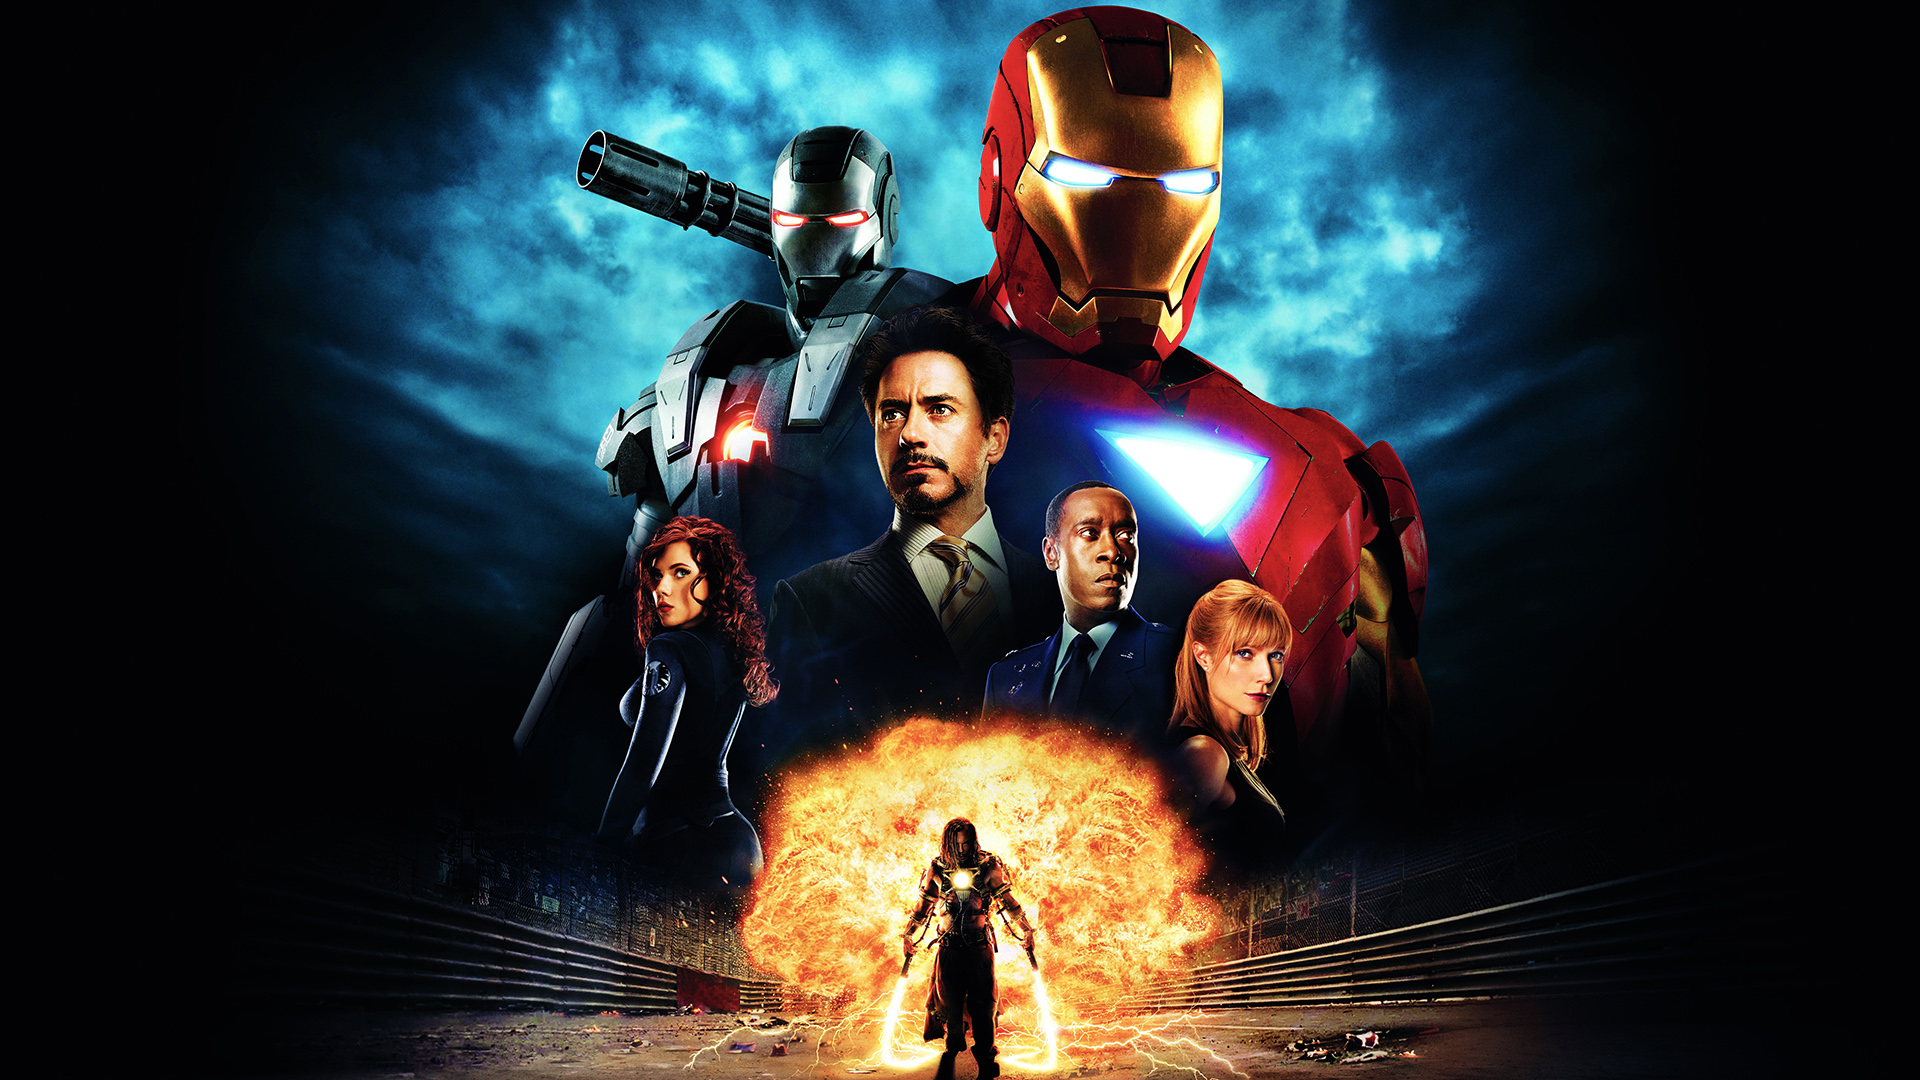 Iron Man 2 Wallpapers, Pictures, Images